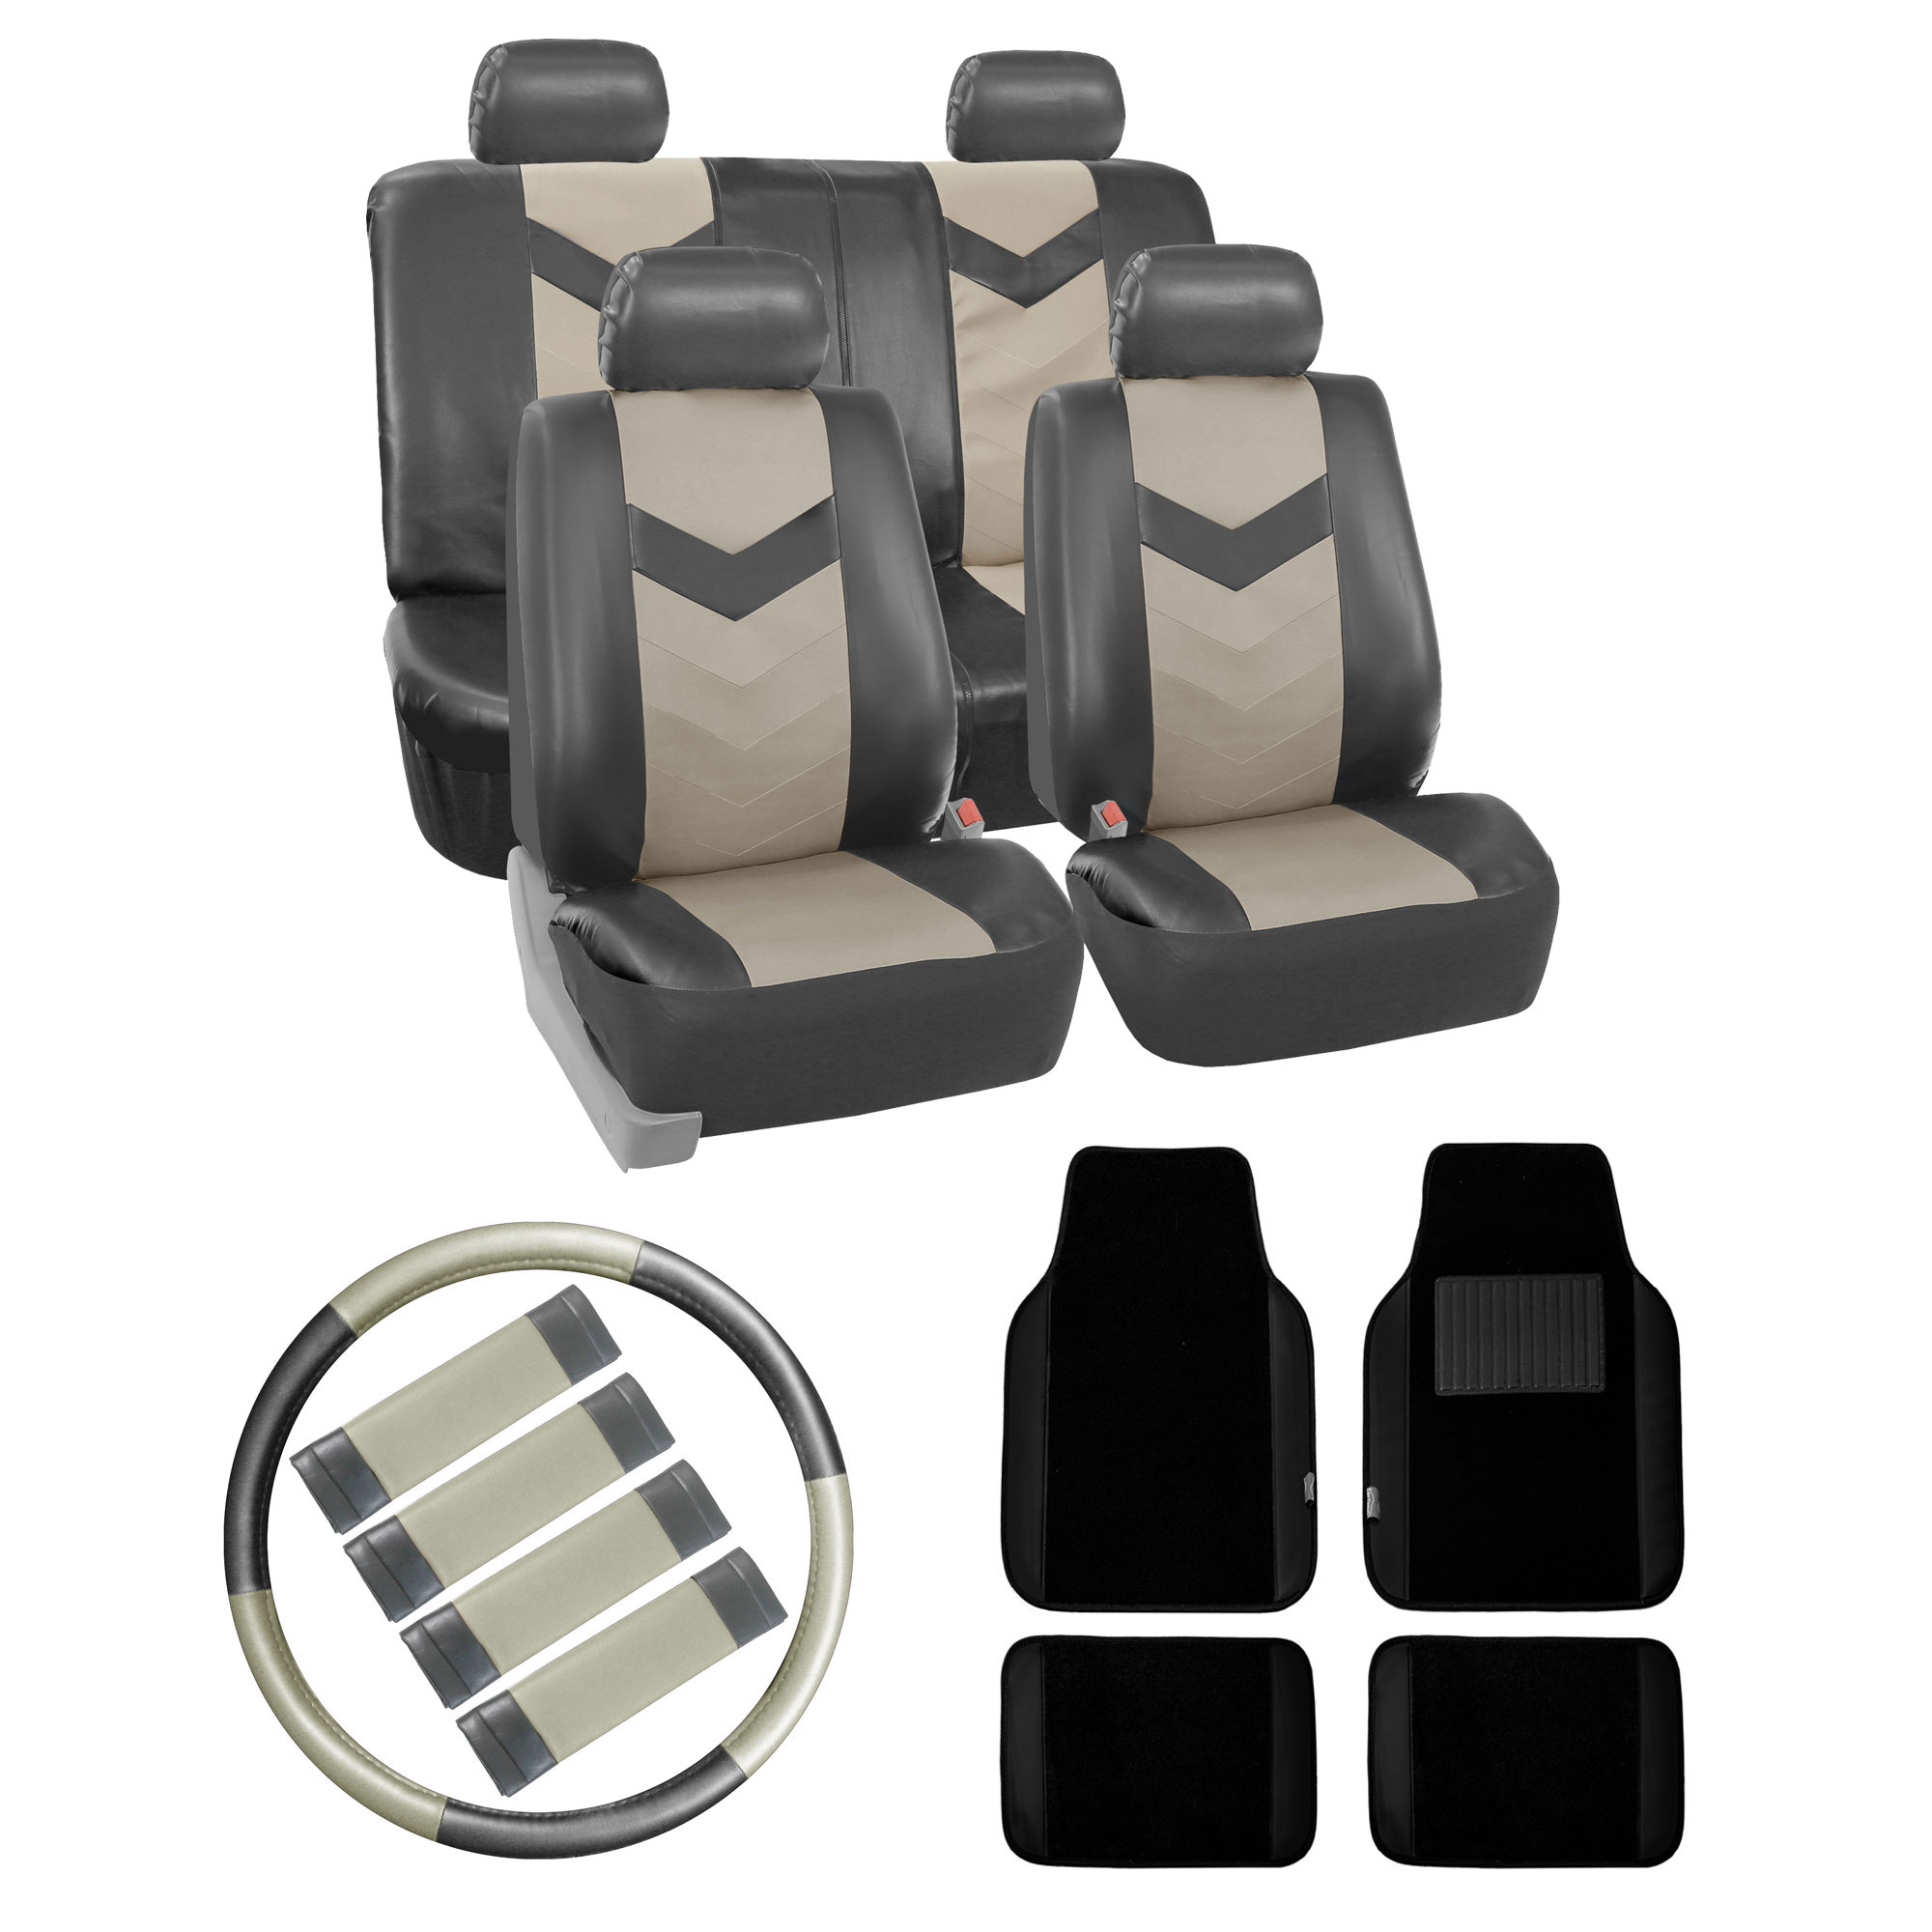 car leather seat cover floor mats steering belt pads combo gray ebay. Black Bedroom Furniture Sets. Home Design Ideas